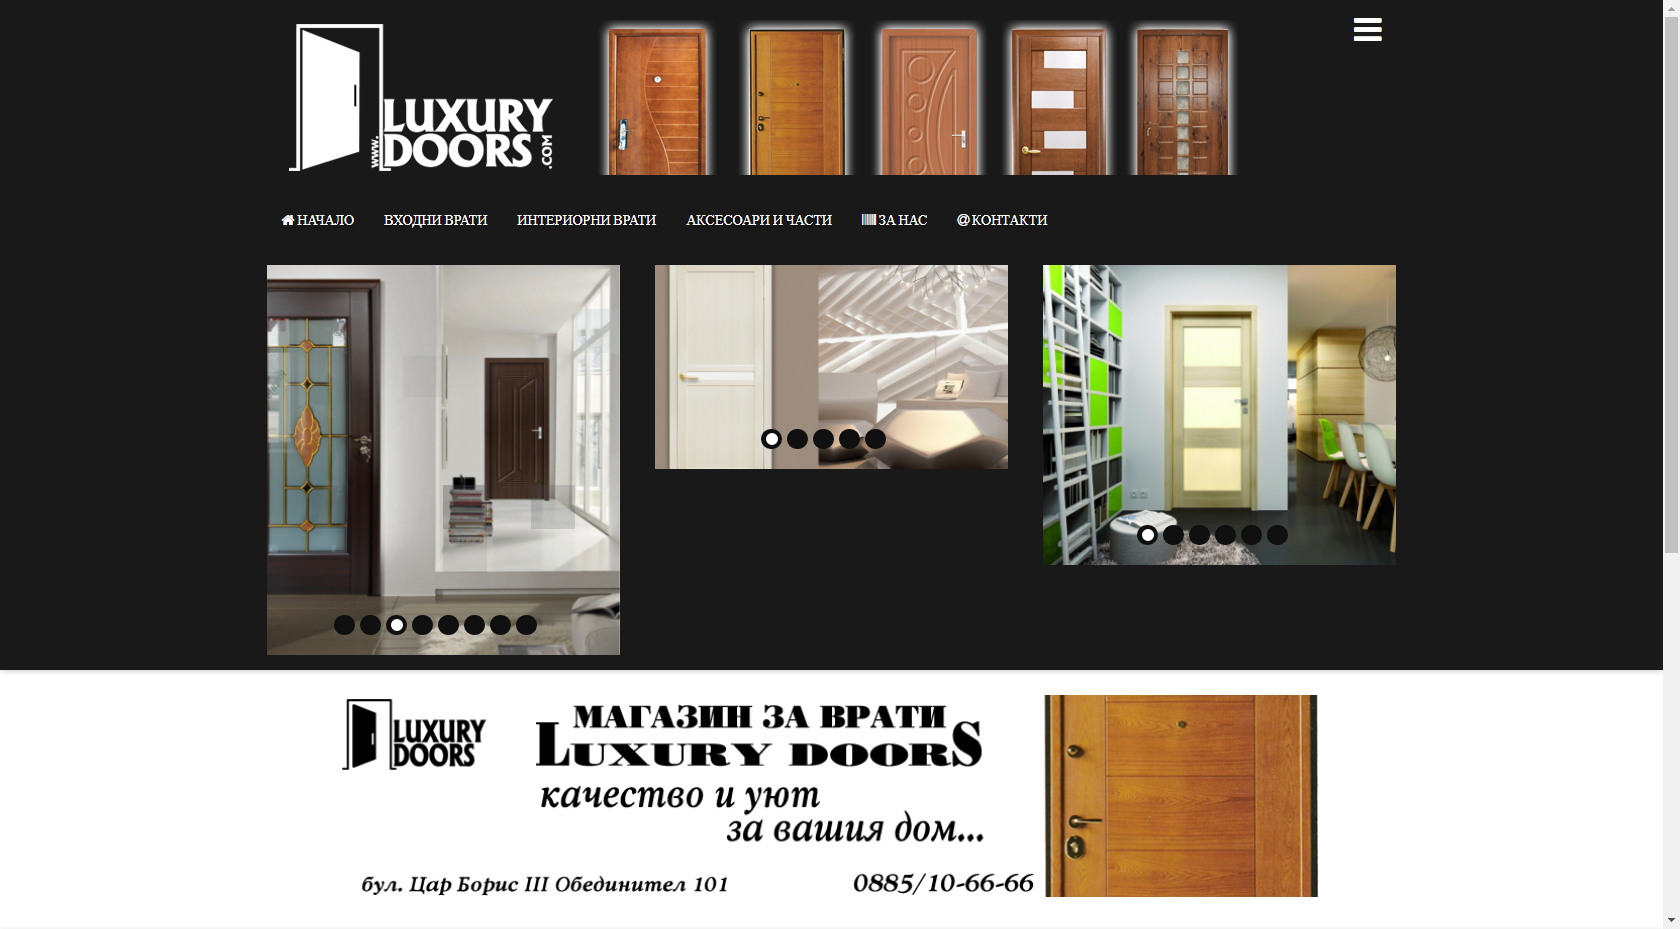 http://www.luxury-doors.com/